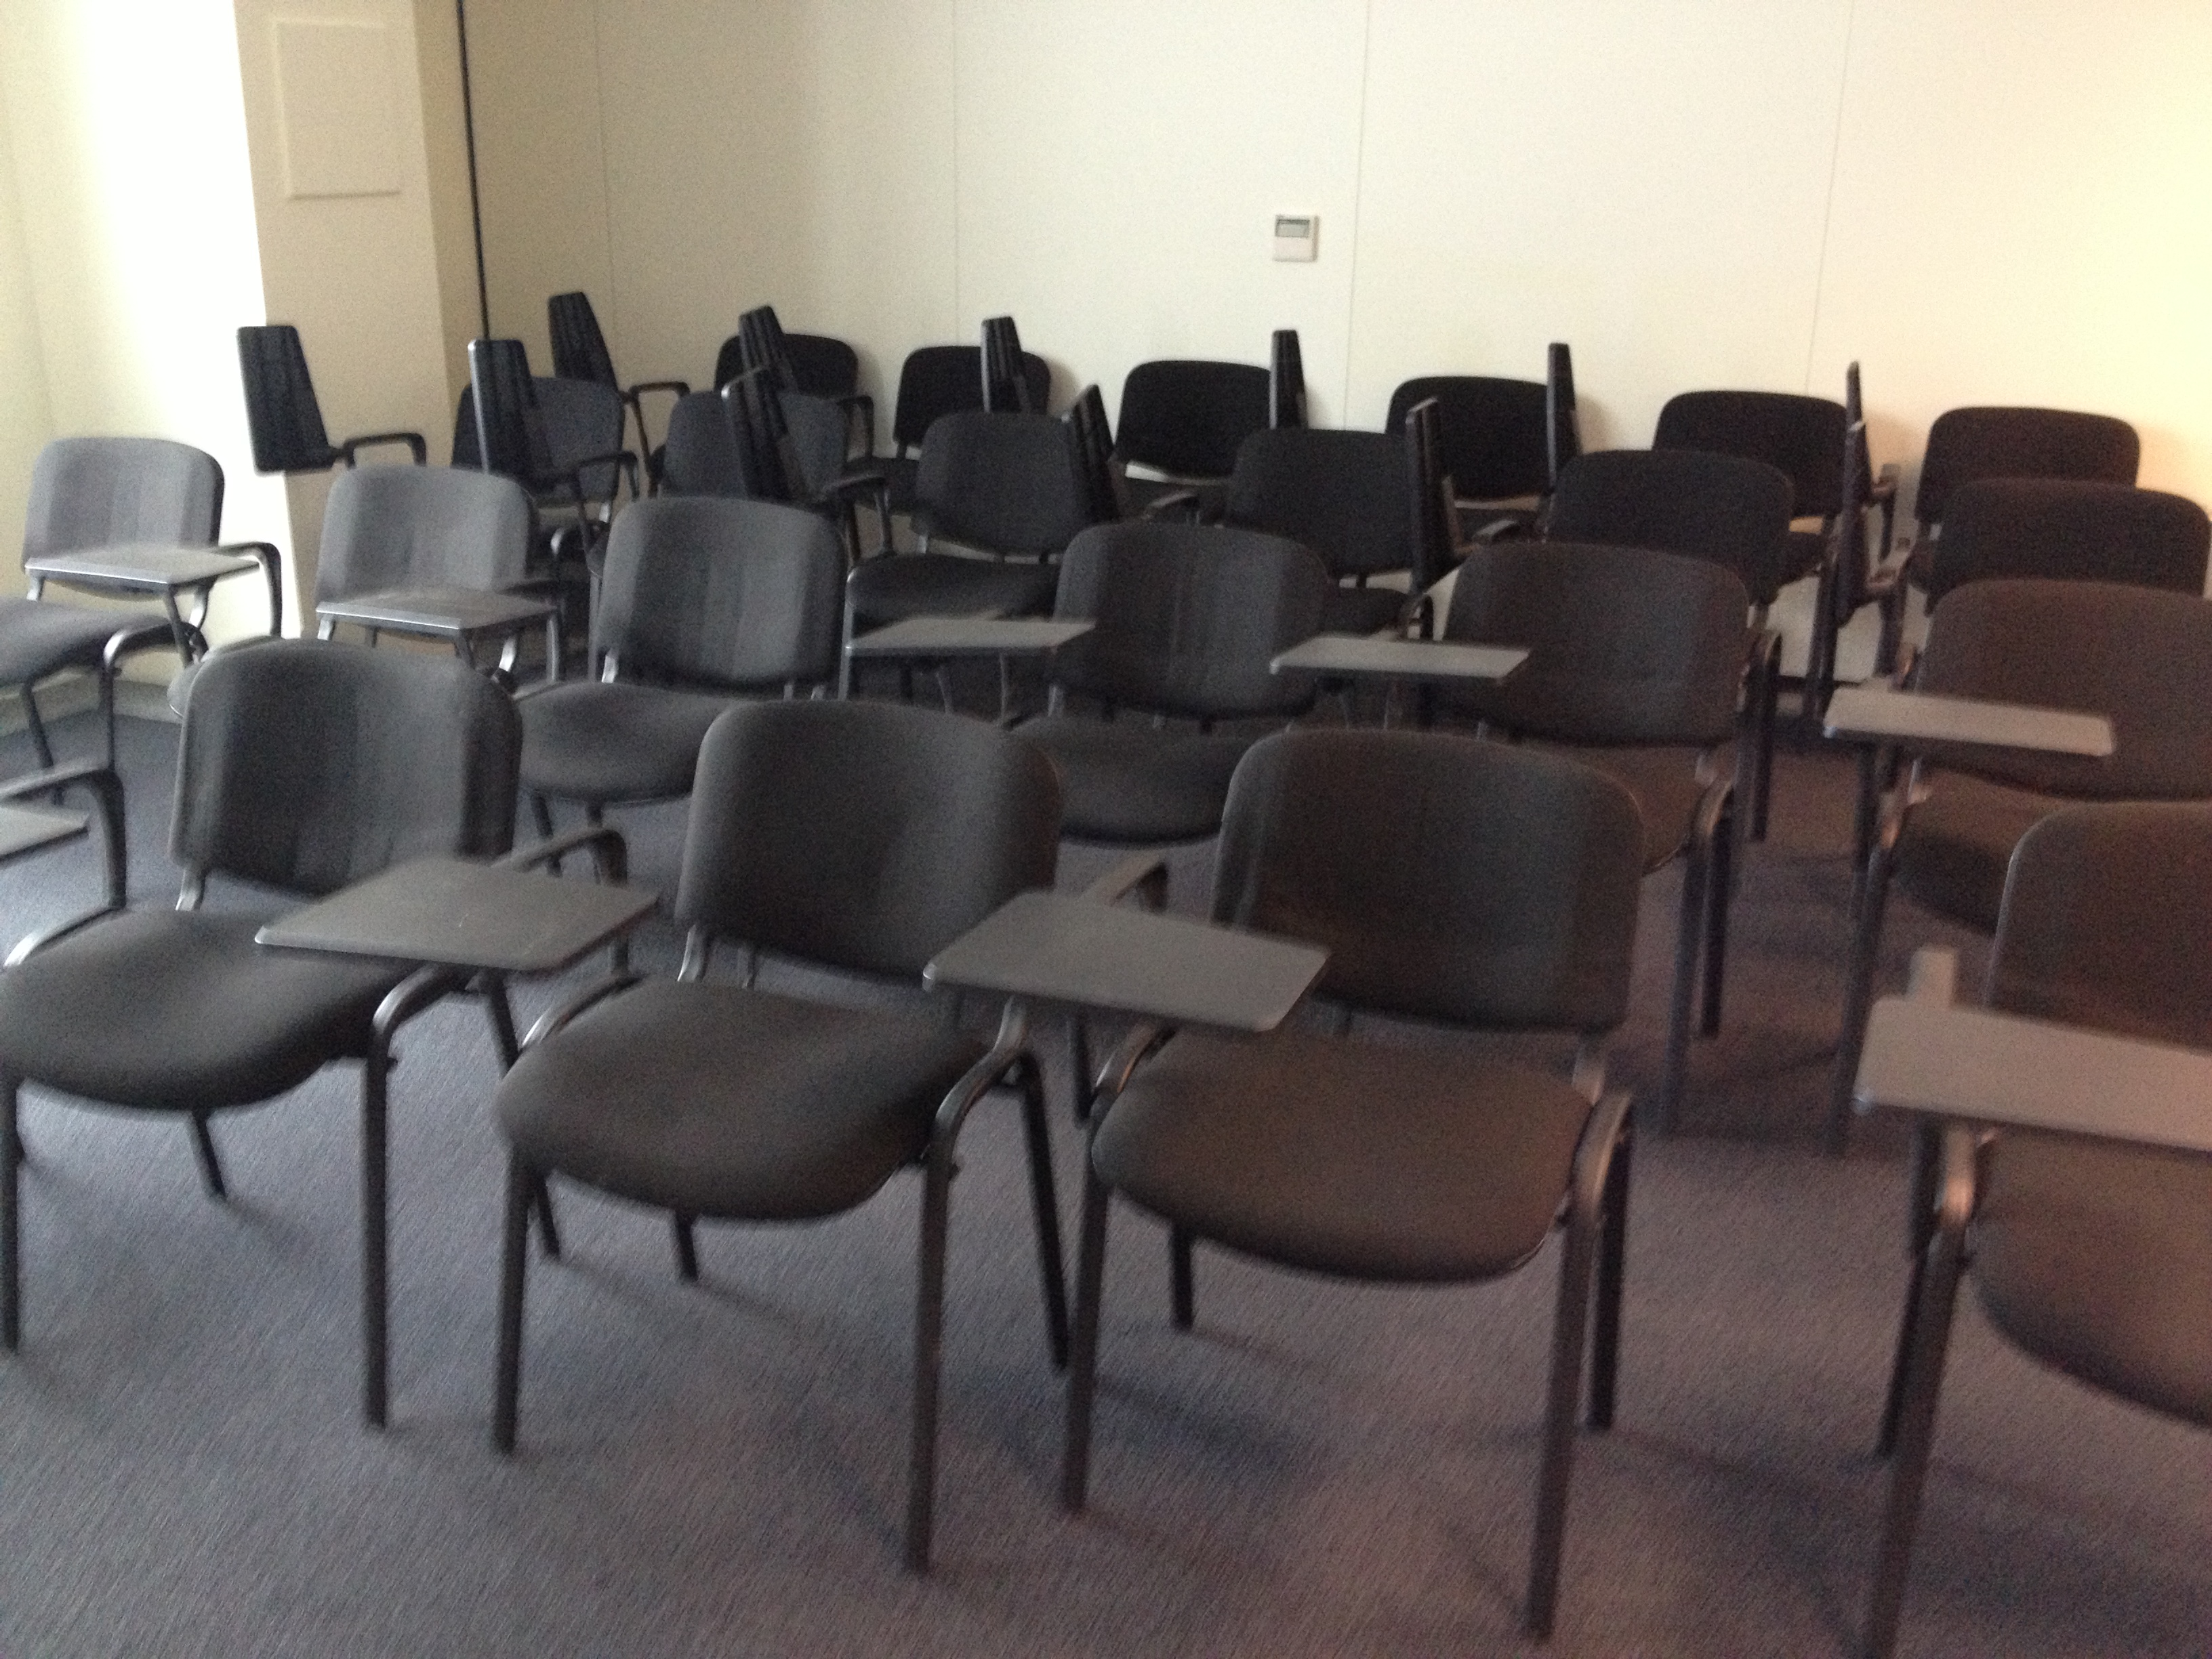 office chair on rent covers in birmingham lectern chairs furniture rentals